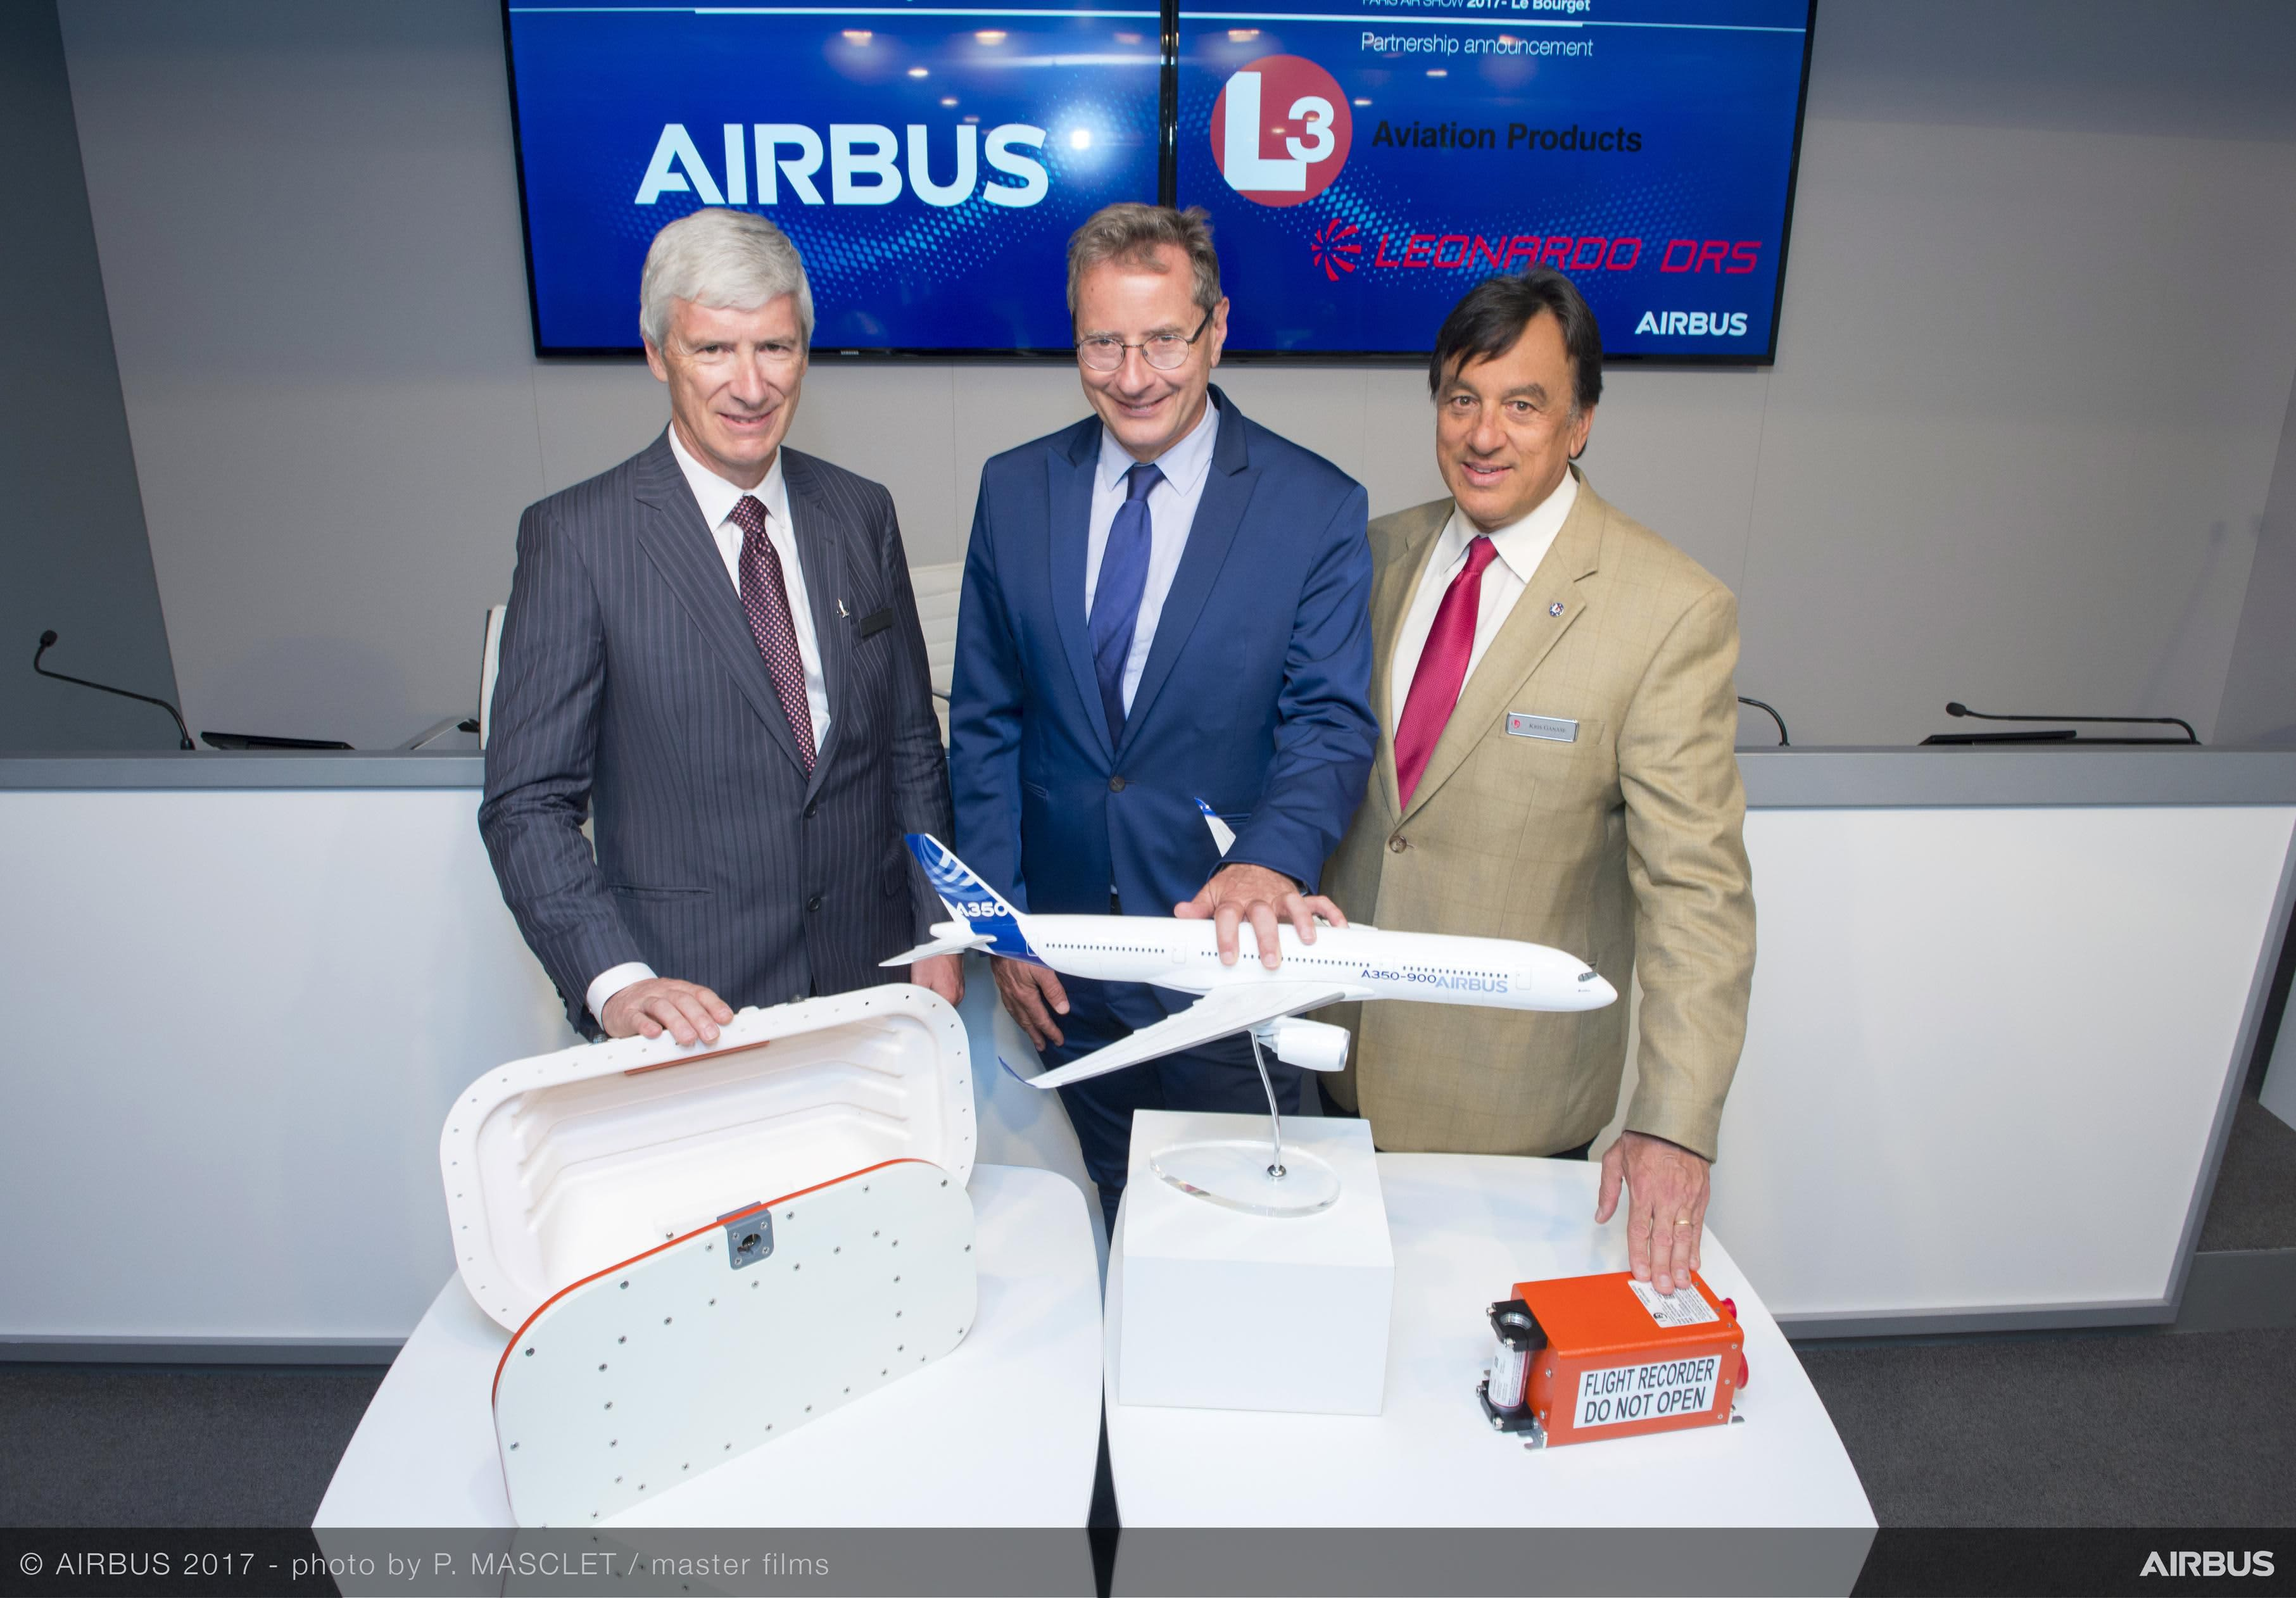 Charles Champion (middle), executive vice president of engineering at Airbus Commercial Aircraft; Martin Munro (L), Canada vice president at DRS technologies; and Kris Ganase (R), president of aviation products and security at L3 Communications show off a new ejectable flight recorder.